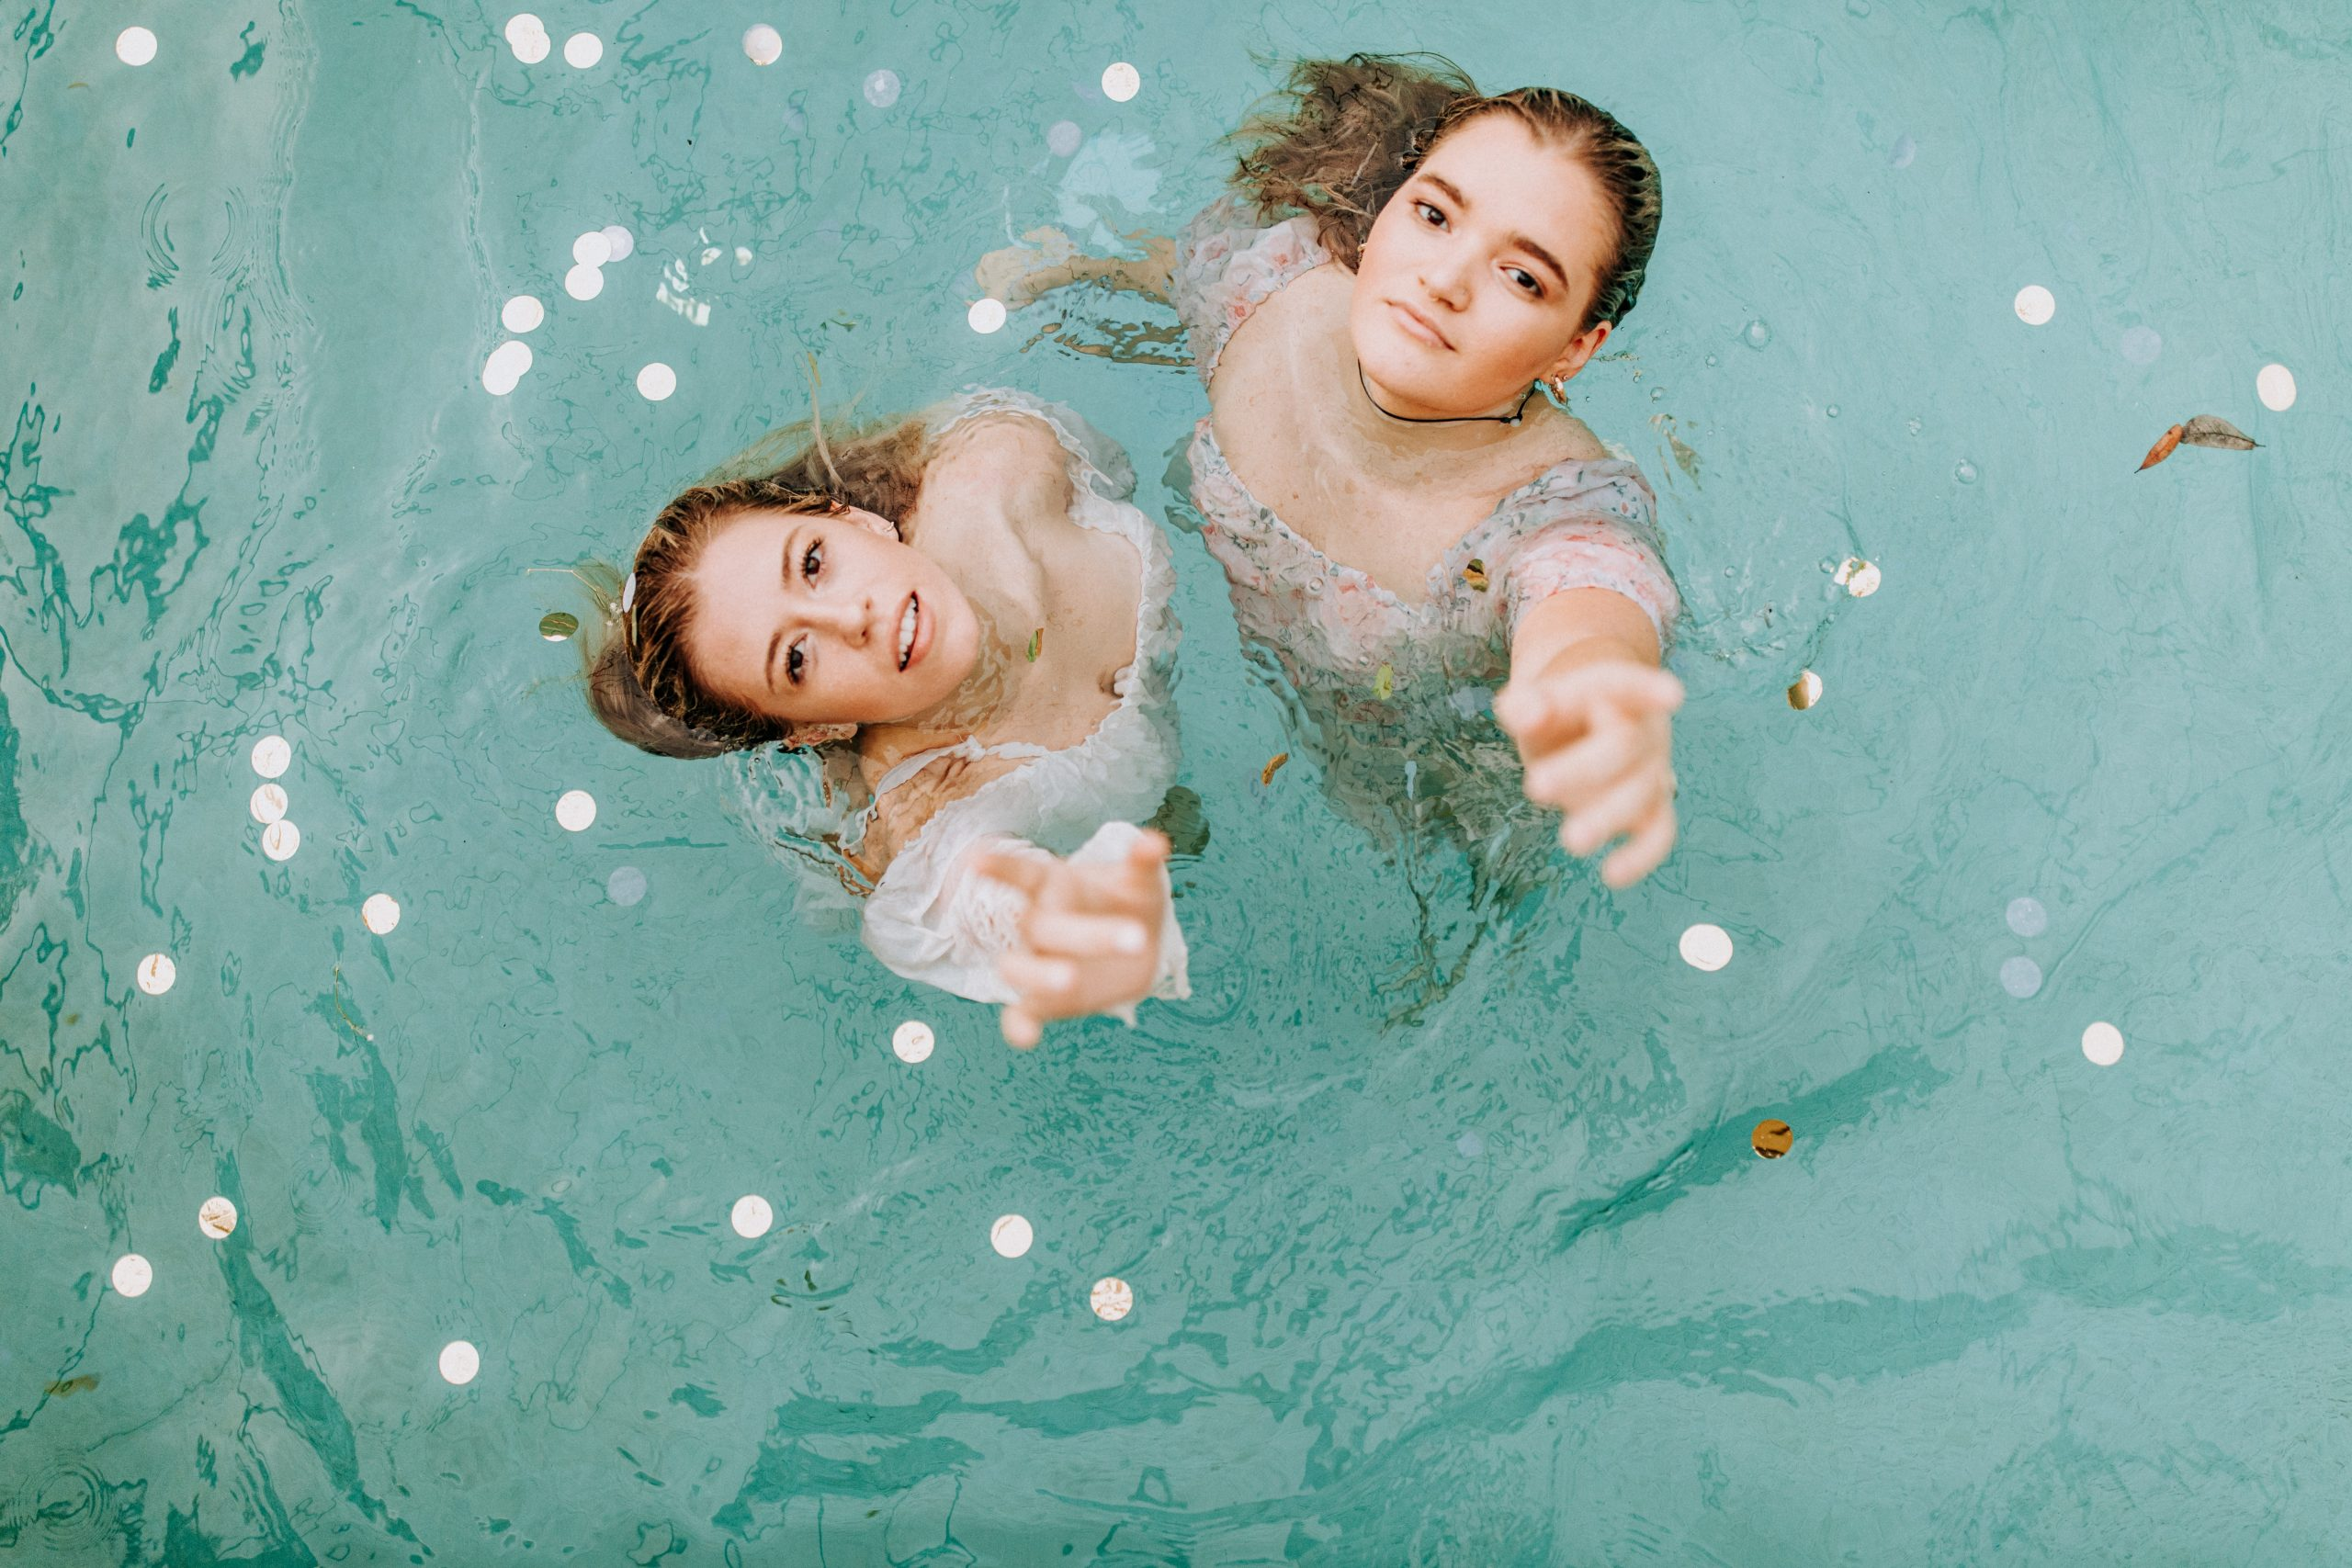 2 girls in water during daytime